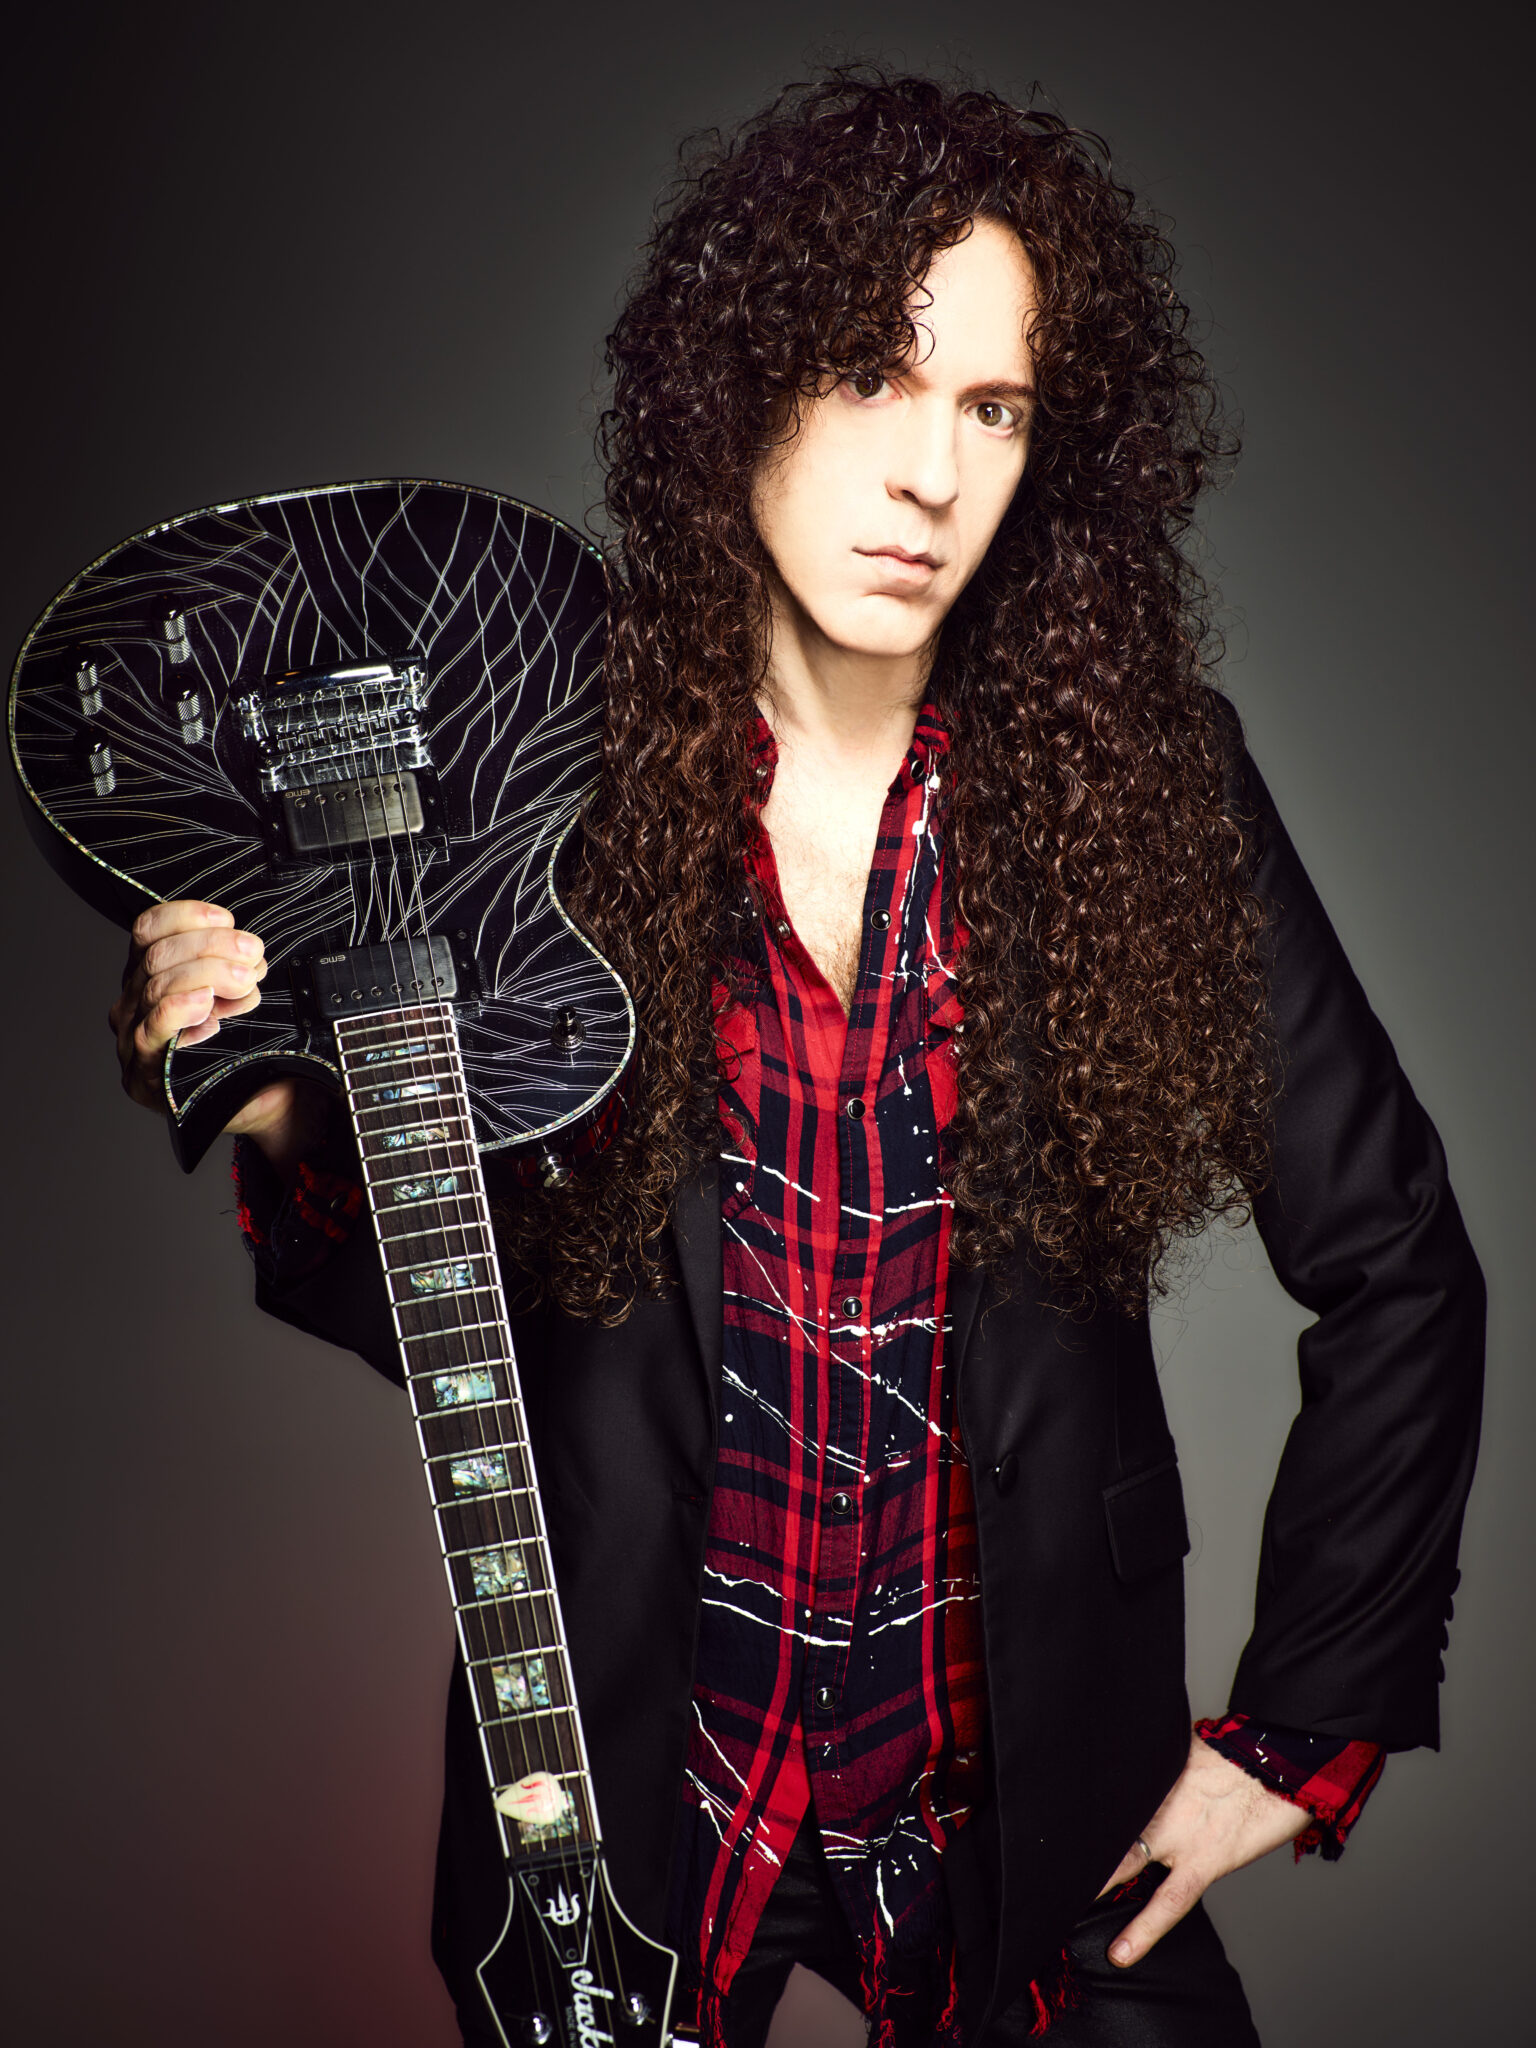 Marty Friedman To Release 'Tokyo Jukebox 3' On April 16th Via Mascot Label Group